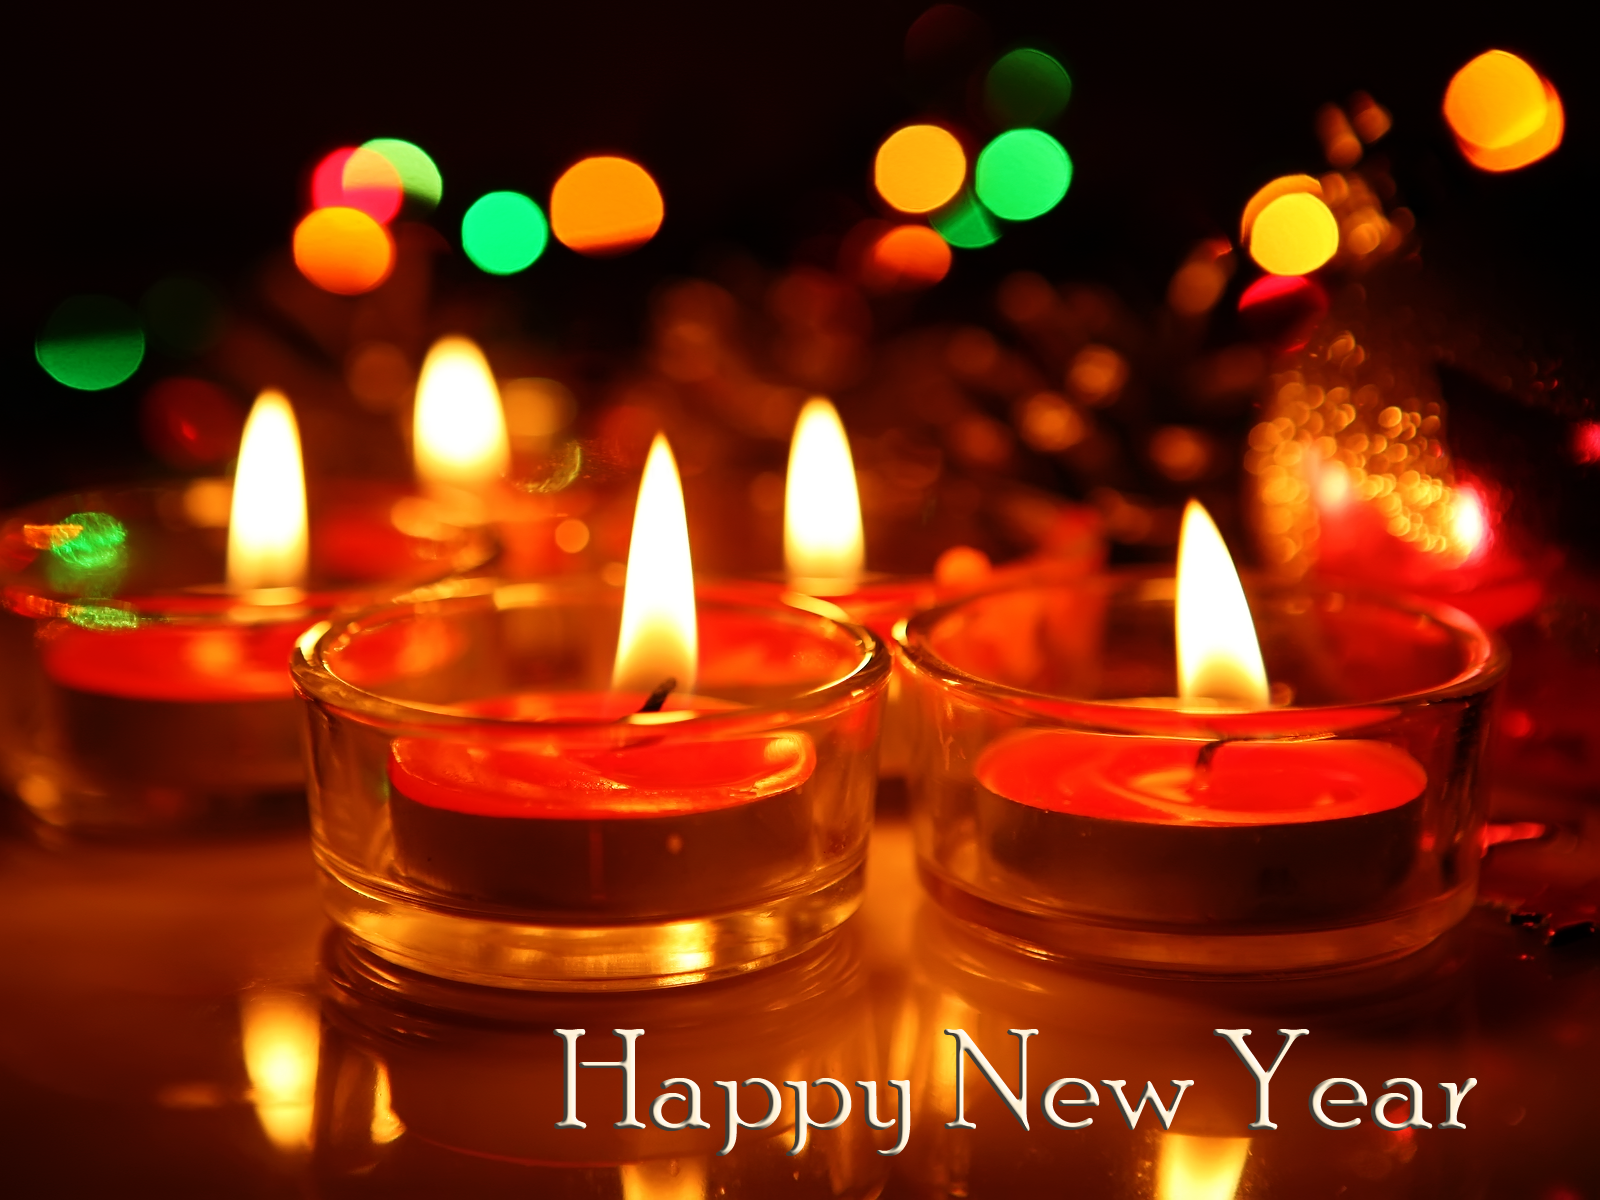 new year 2016 wallpapers desktop background Wallpapers Backgrounds 1600x1200